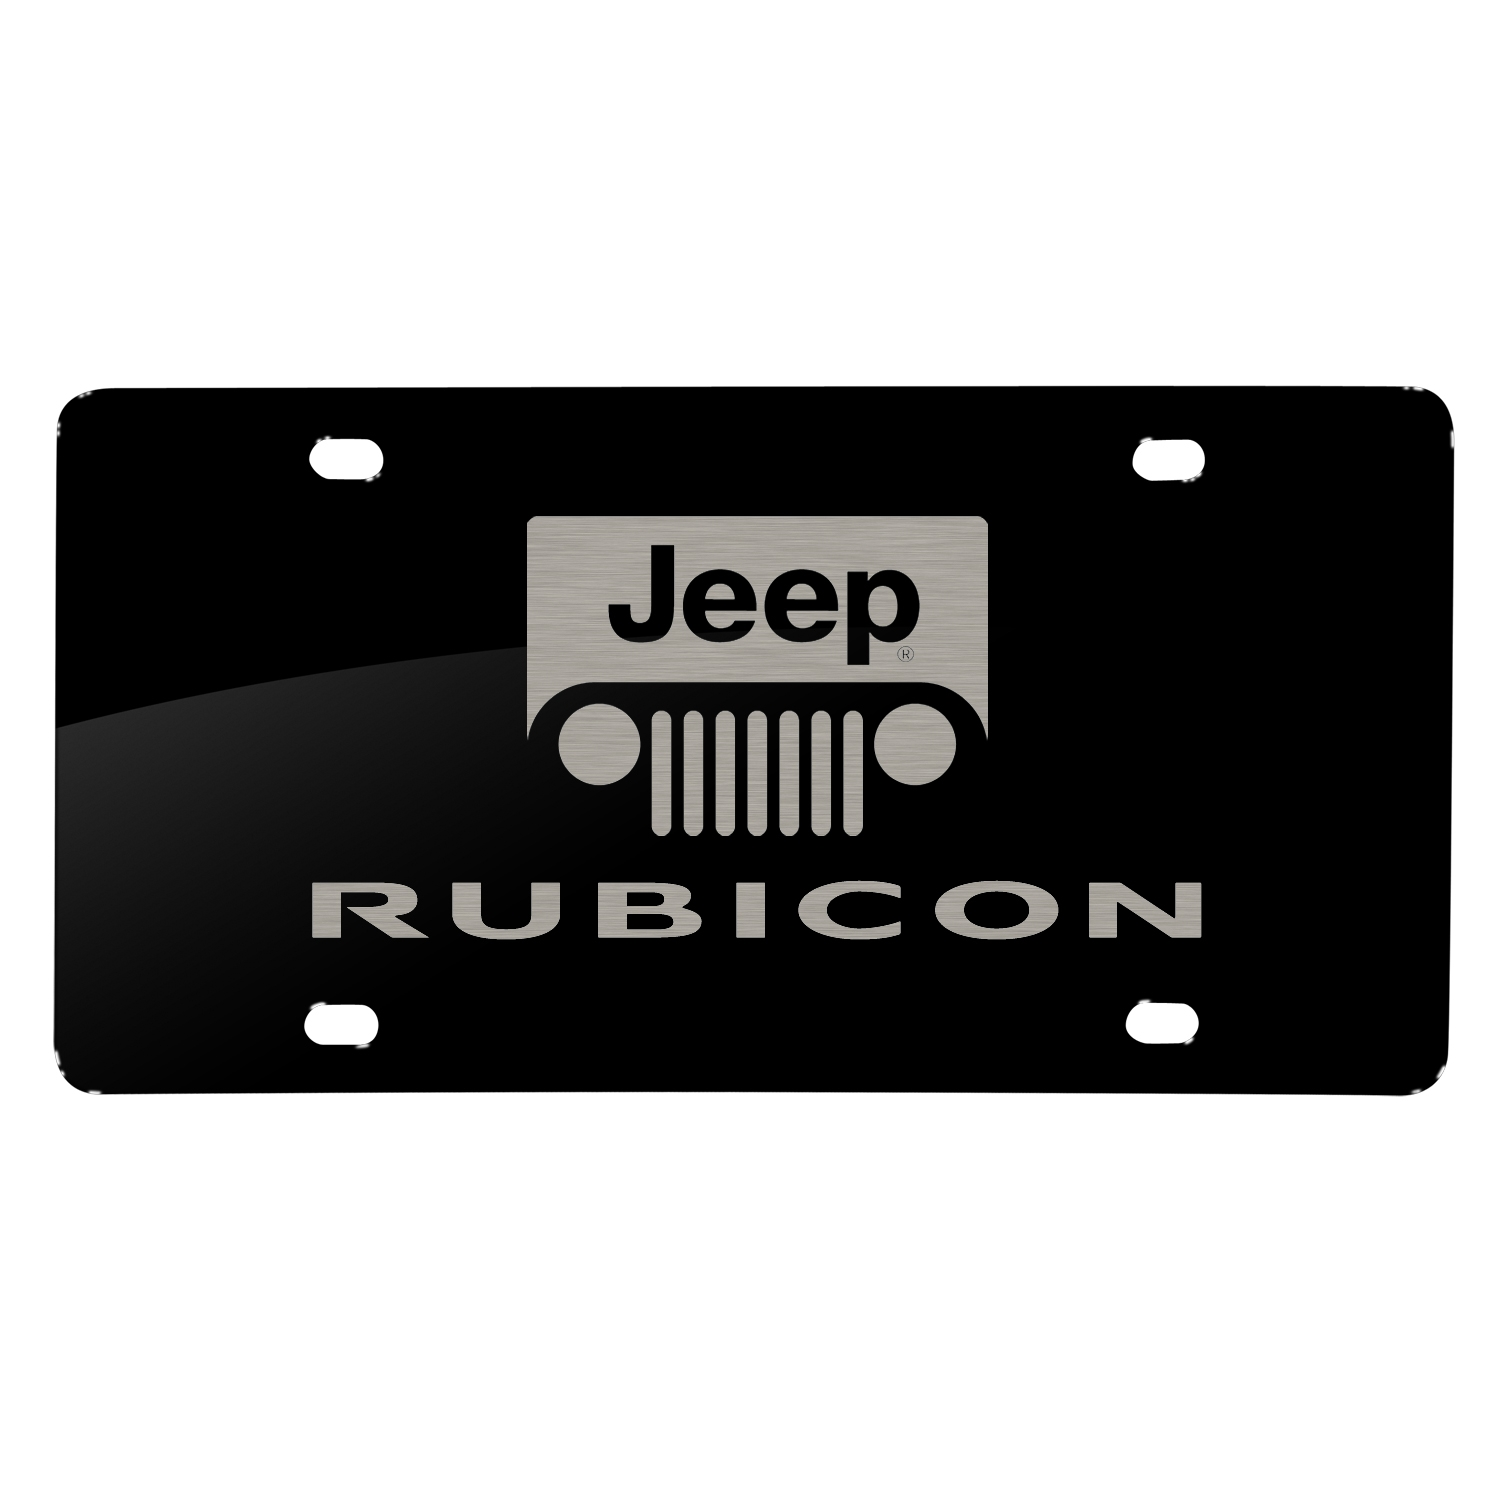 Jeep Rubicon Laser Mark Black Acrylic License Plate